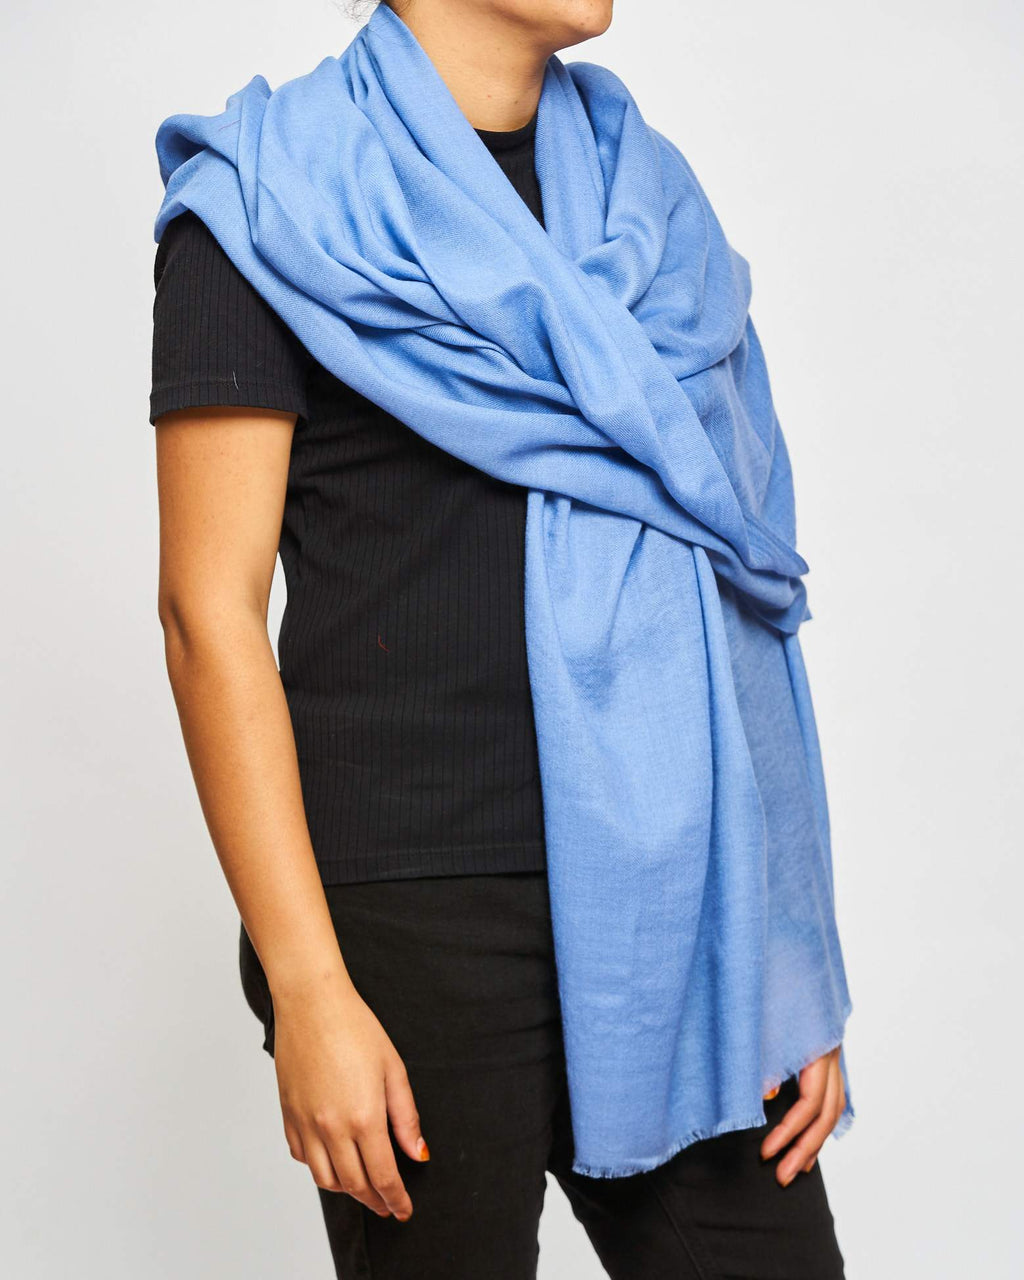 Cashmere Plain - Cornflower Blue